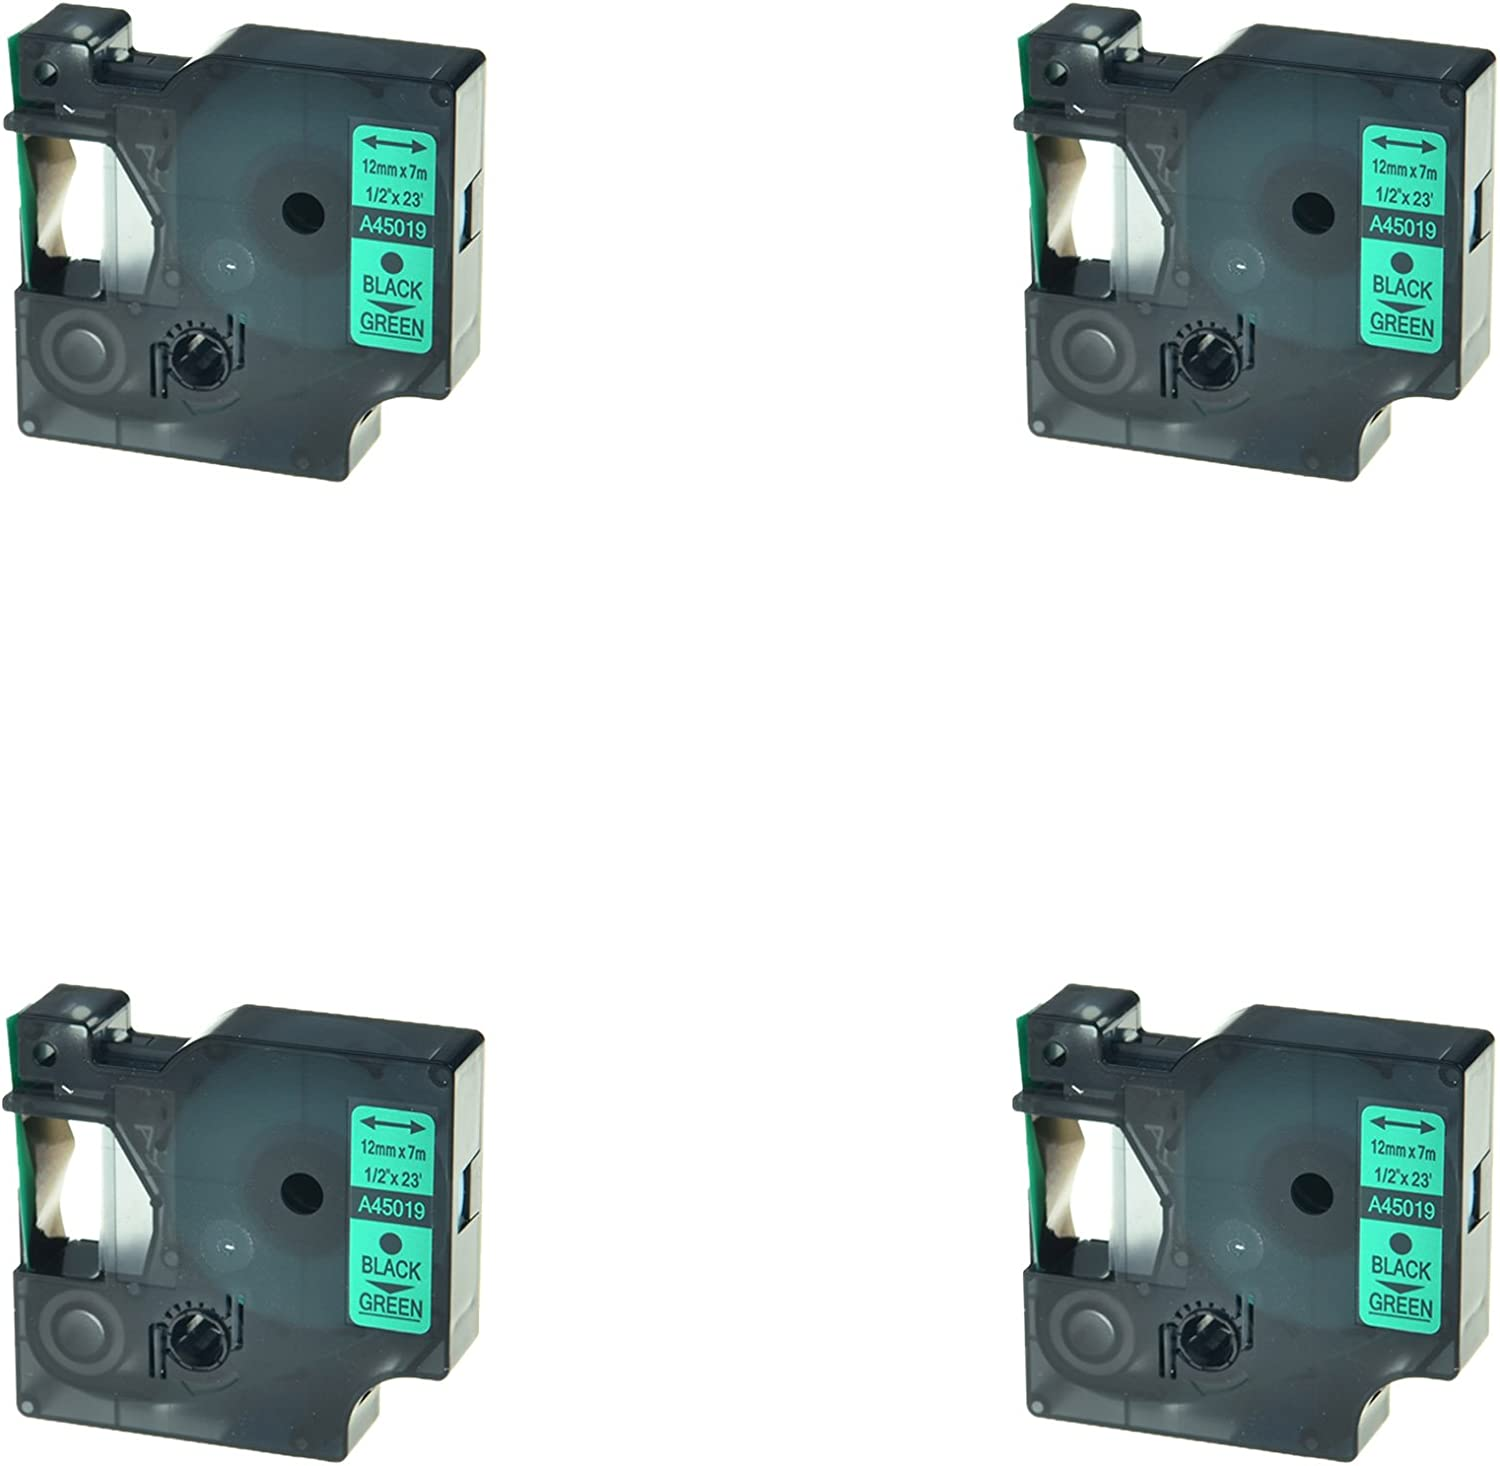 4PK For Dymo D1 45019 LabelManager 155 160 200 Printer Black on Green Label Tape